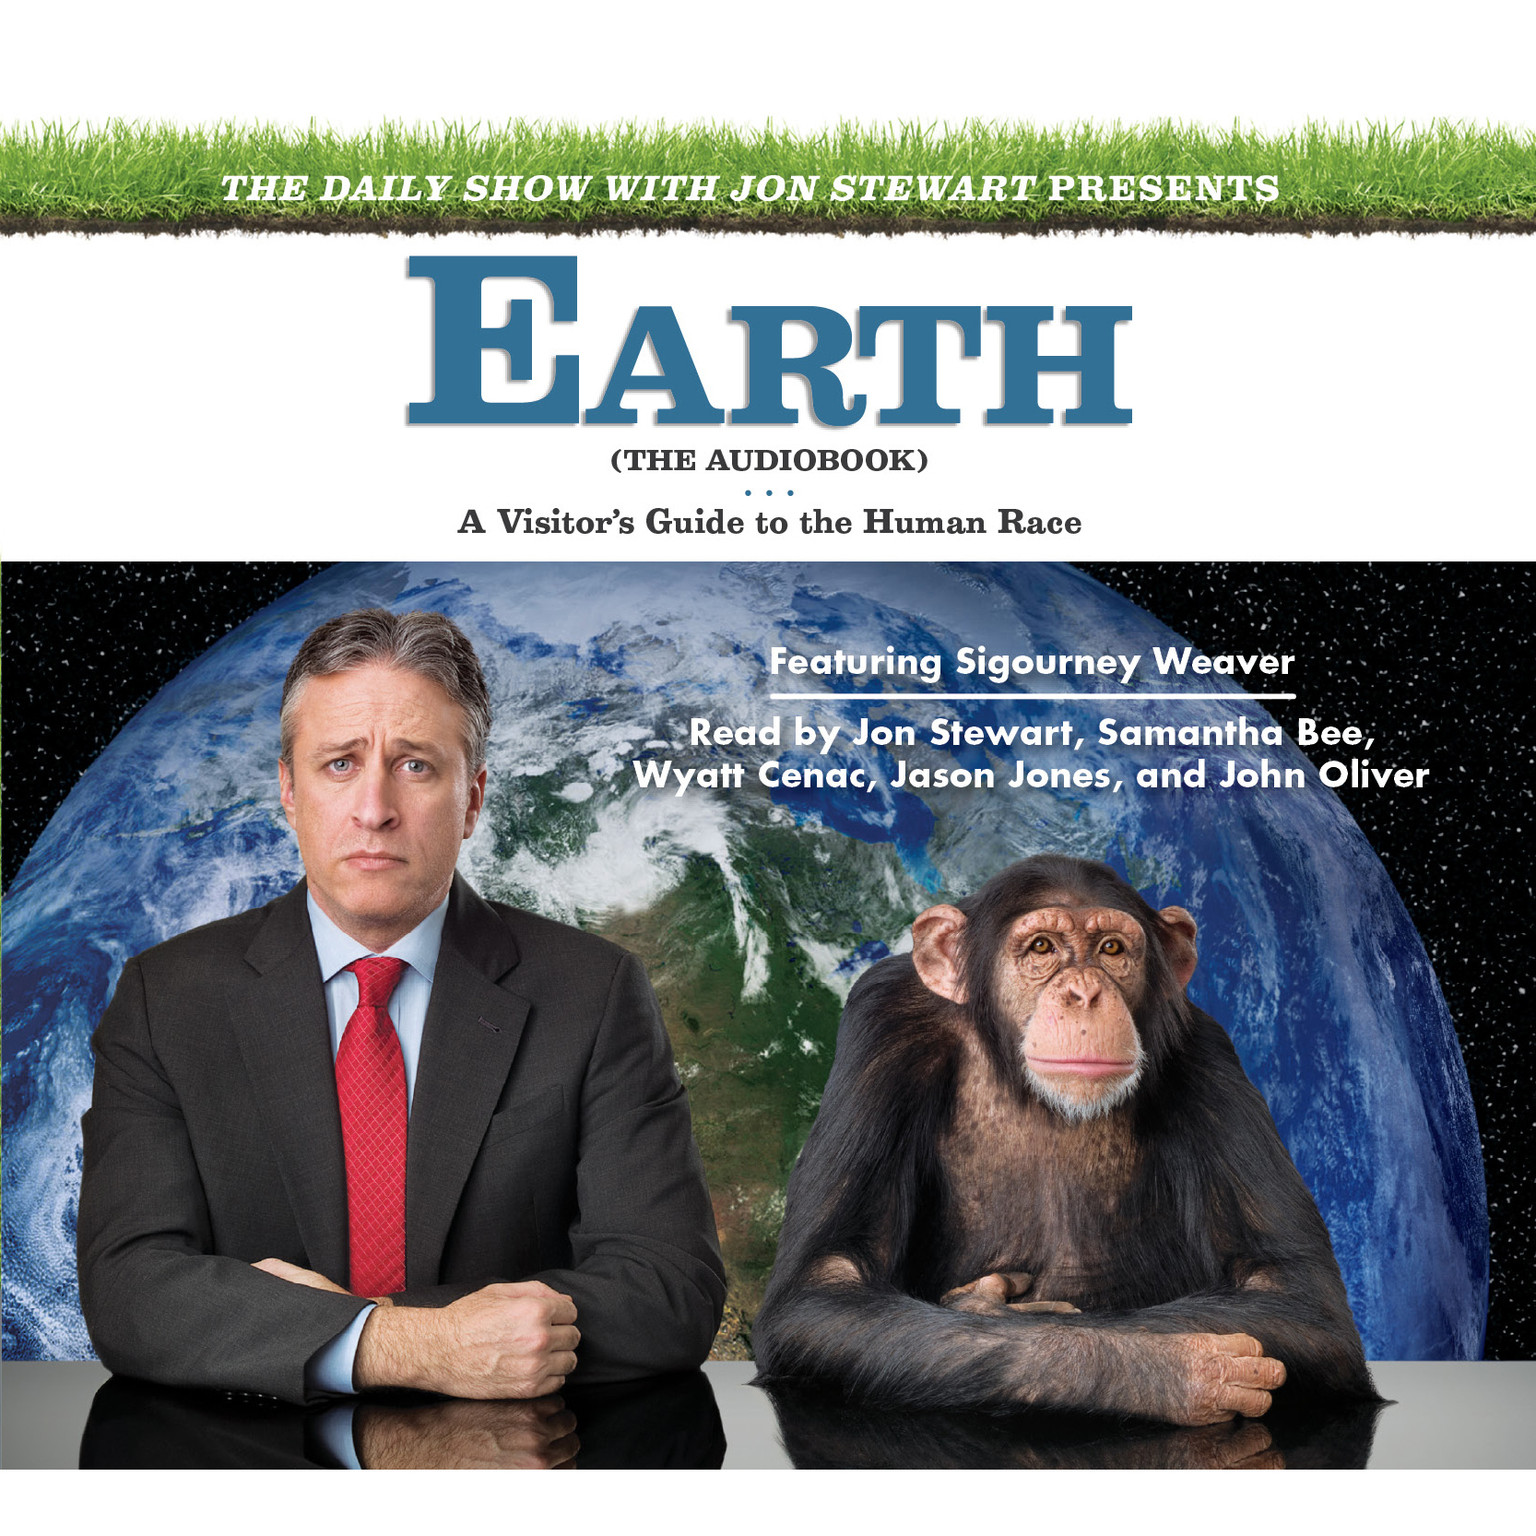 Printable The Daily Show with Jon Stewart Presents Earth (The Audiobook): A Visitor's Guide to the Human Race Audiobook Cover Art